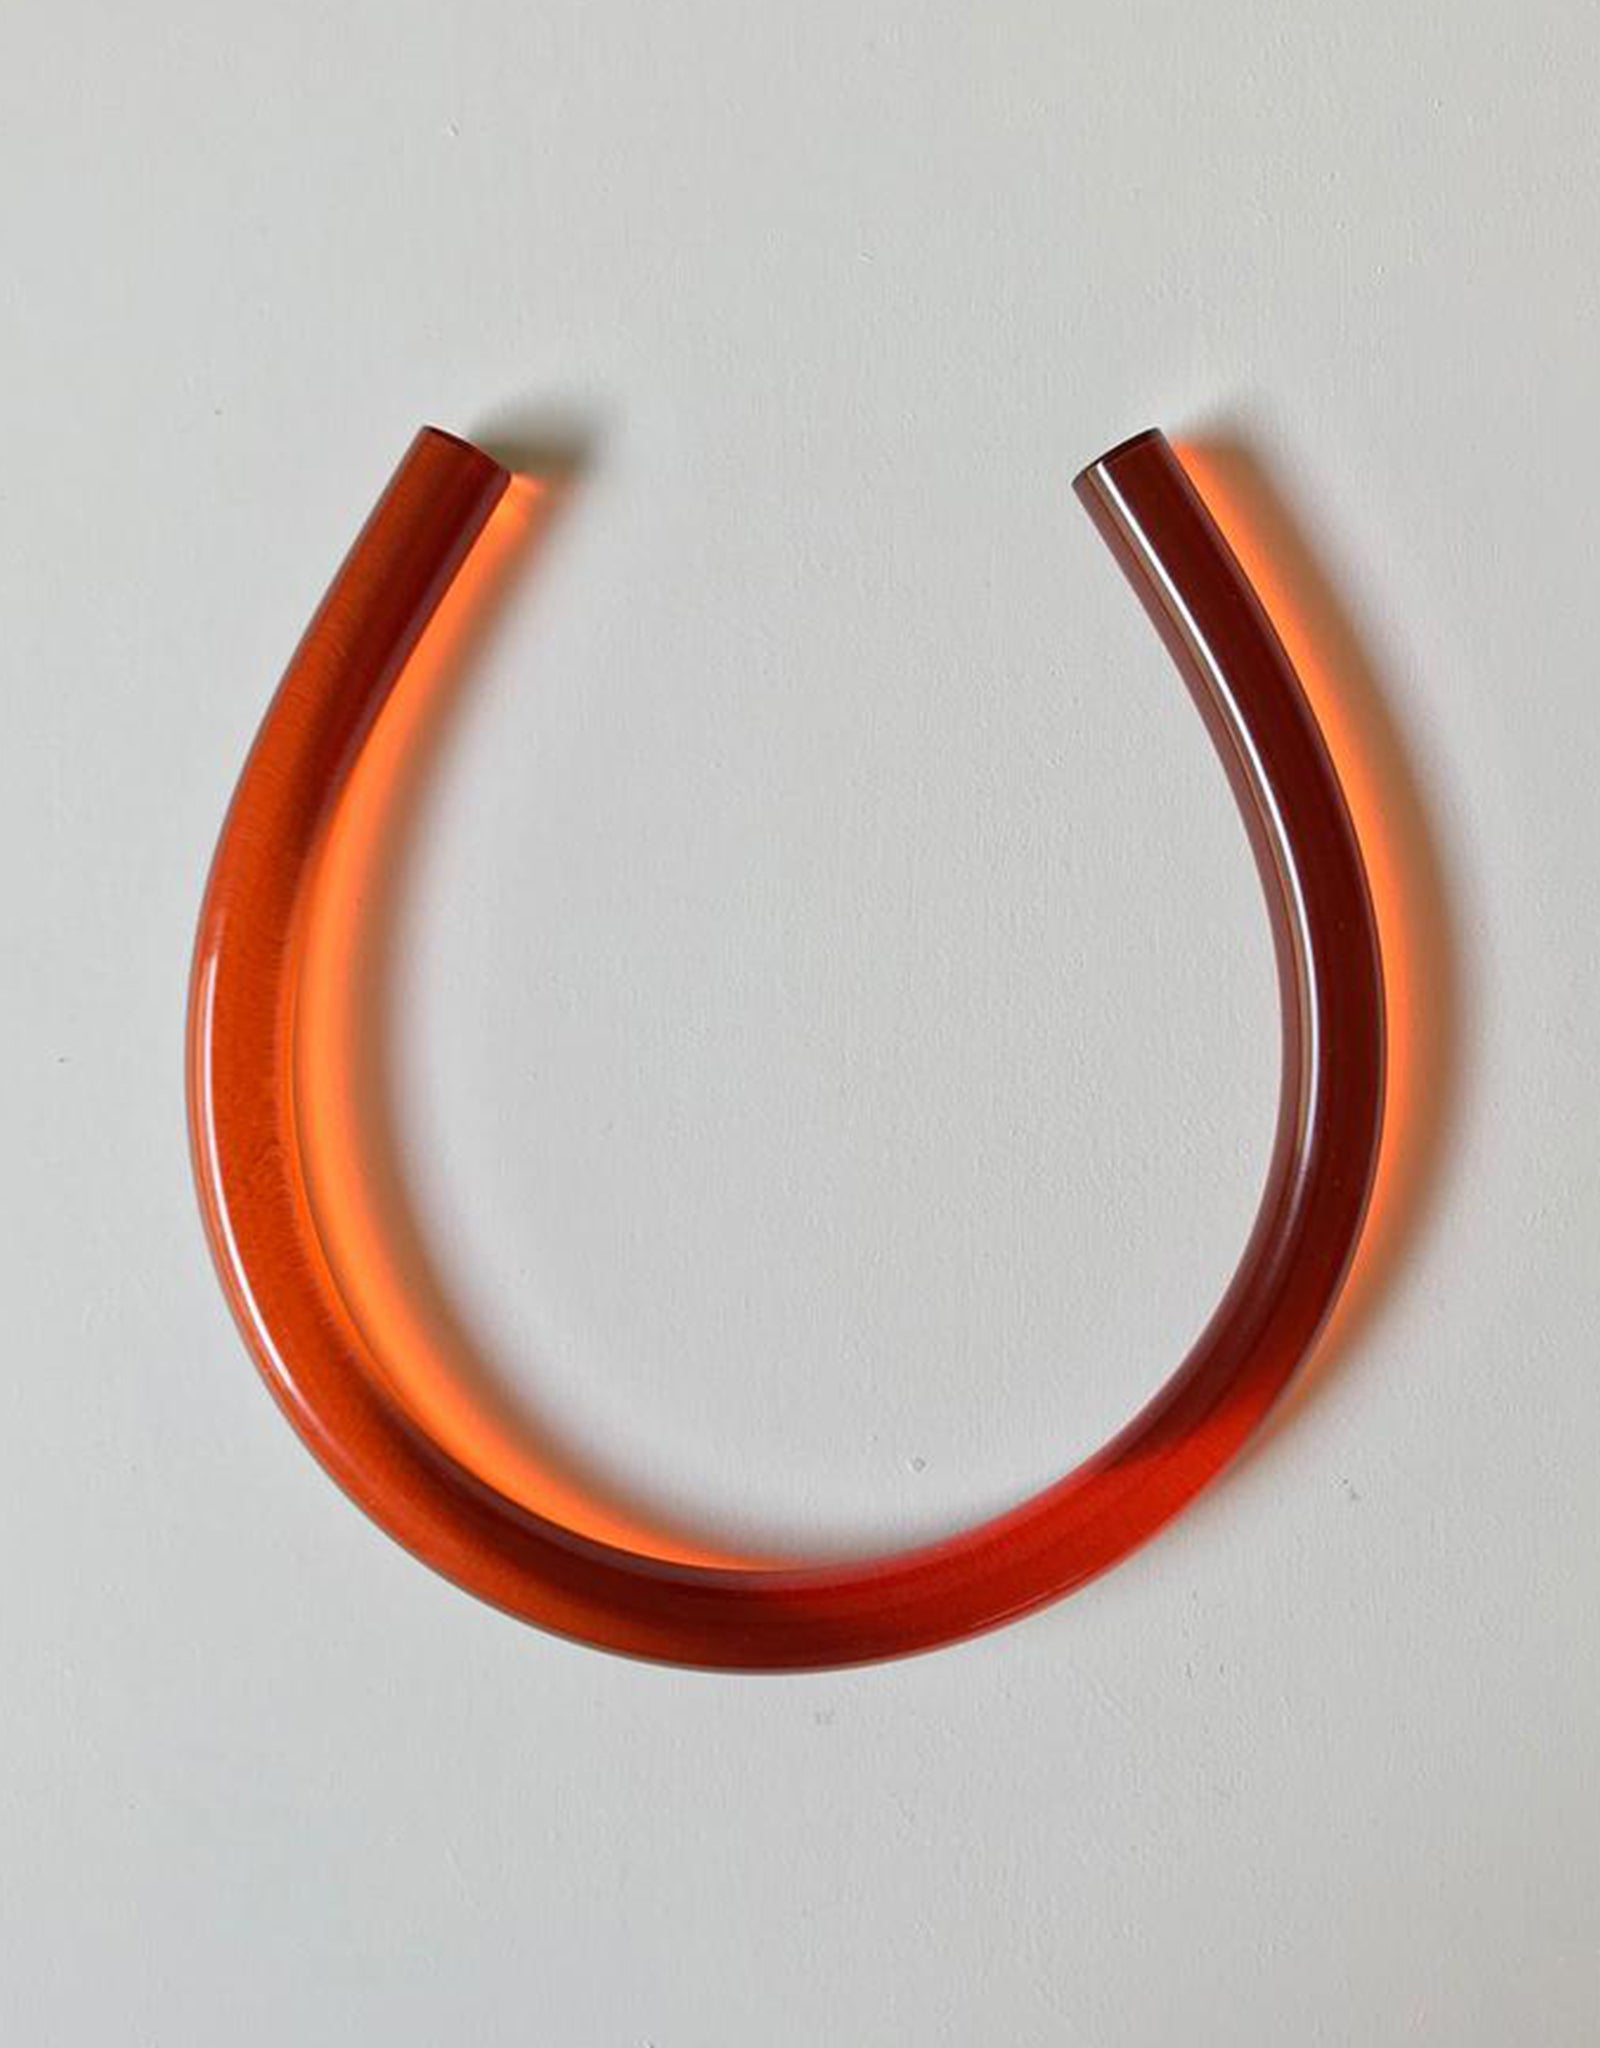 Translucent Copper Horseshoe Necklace by Corey Moranis. Available at FAWN Toronto.